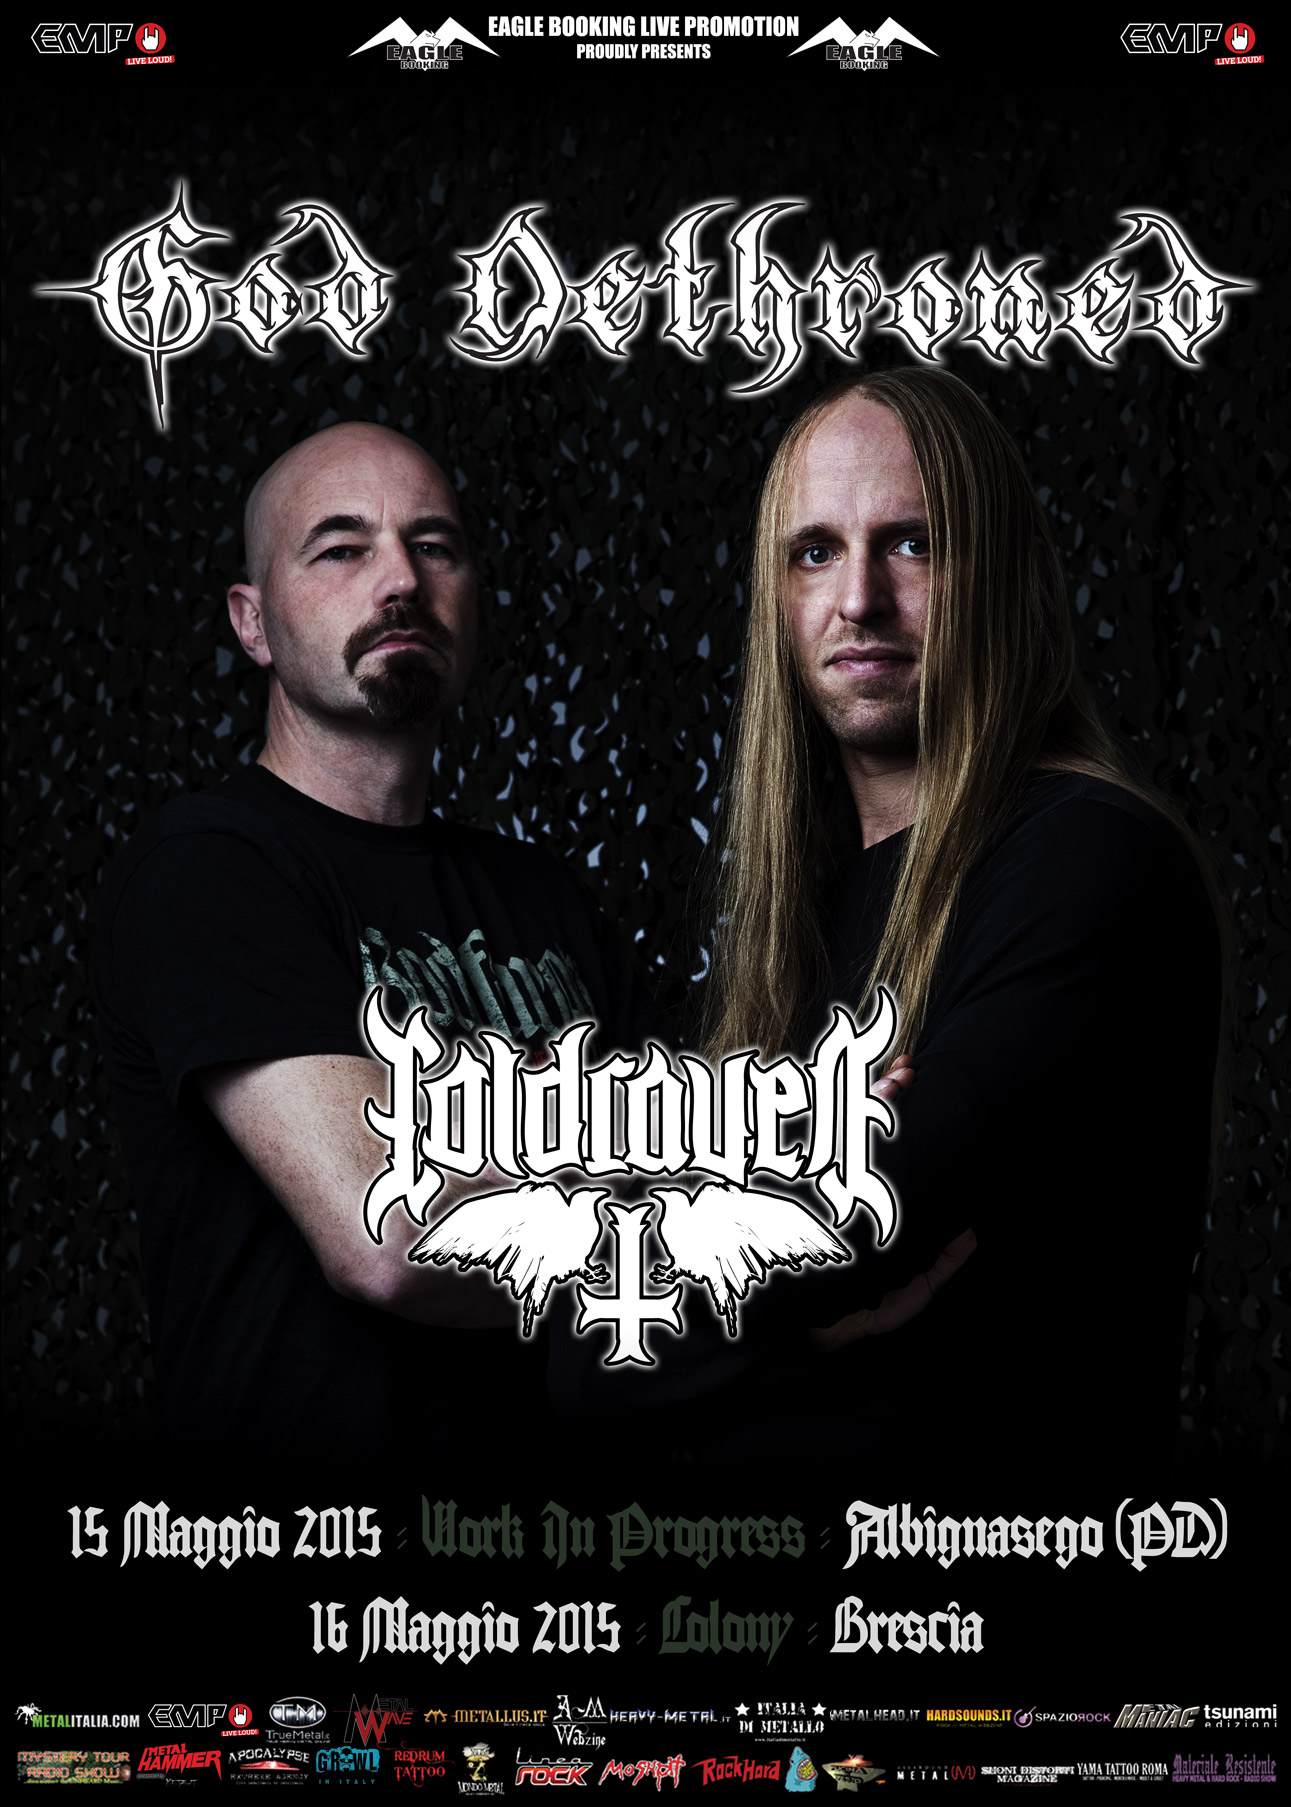 God dethroned italian show promo web 2015